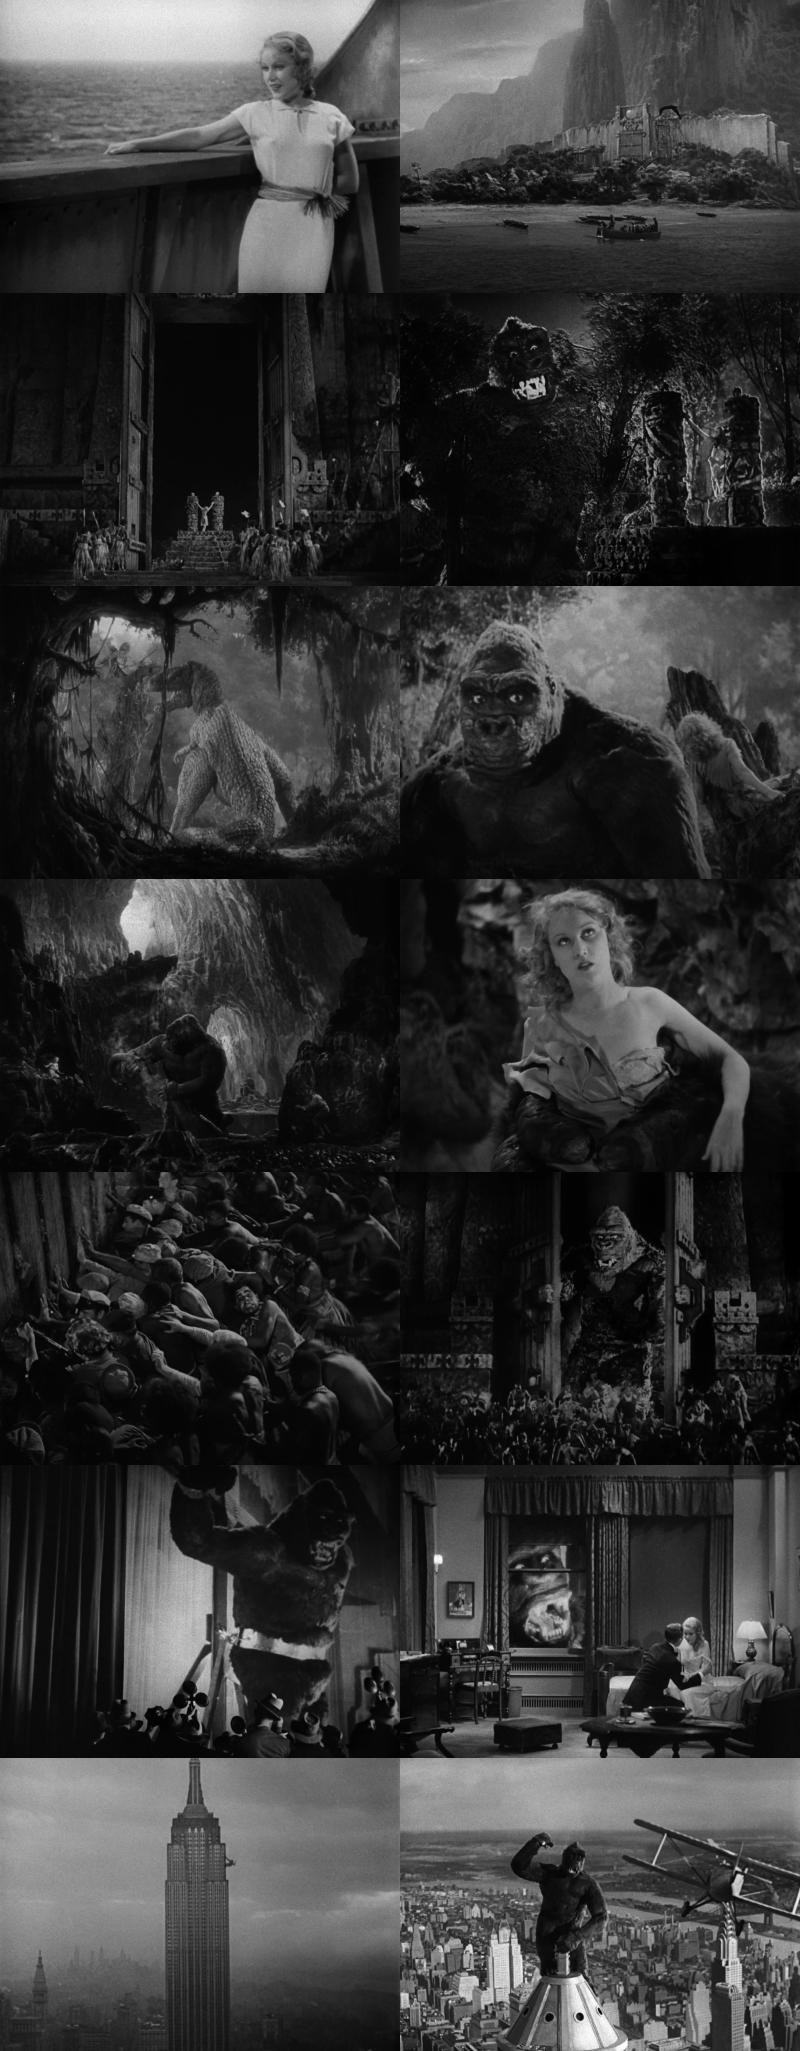 http://watershade.net/public/king-kong-1933.jpg